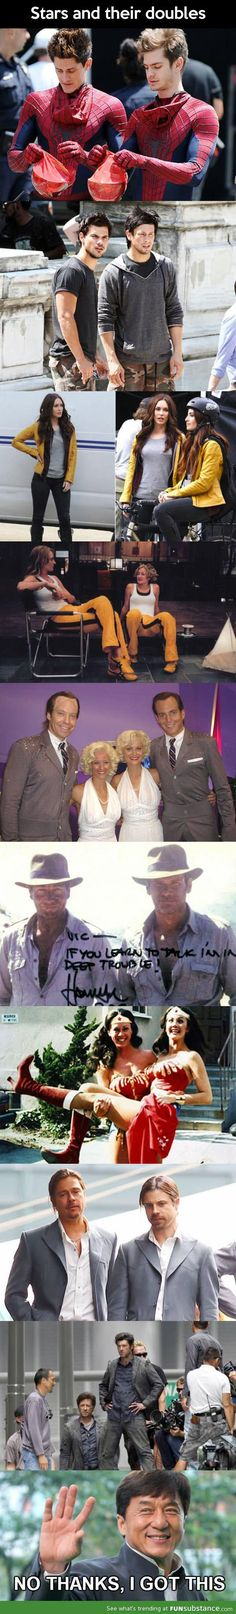 Stars and their doubles. On the Indiana jones one i like the look of the double...haha